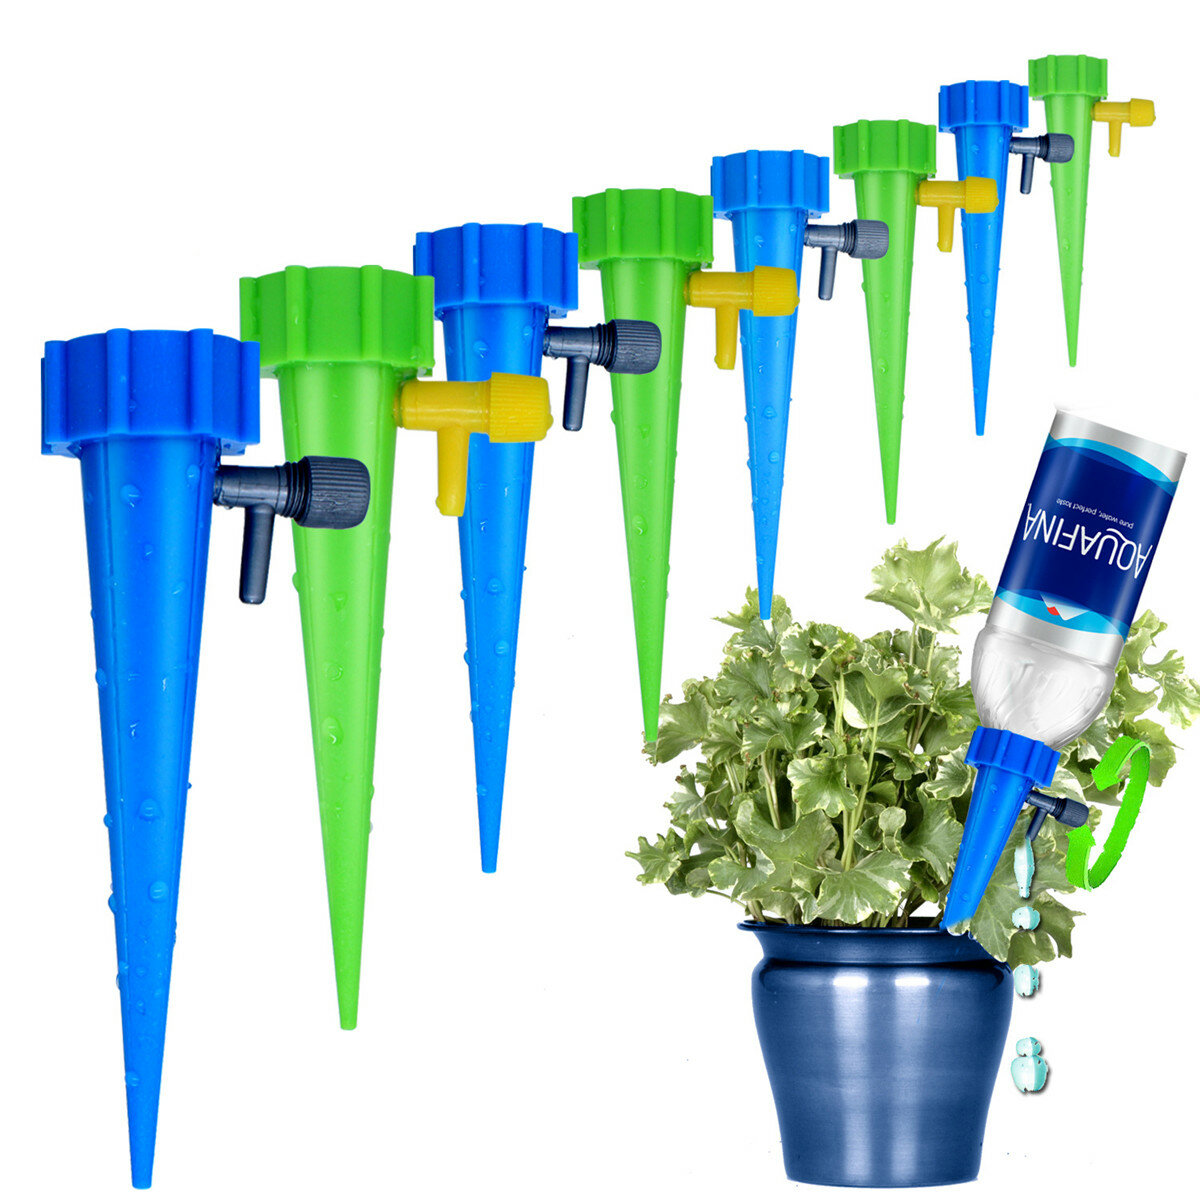 6pcs Plant Waterer Self Plant Watering Devices For Potted Flower Drip Irrigation